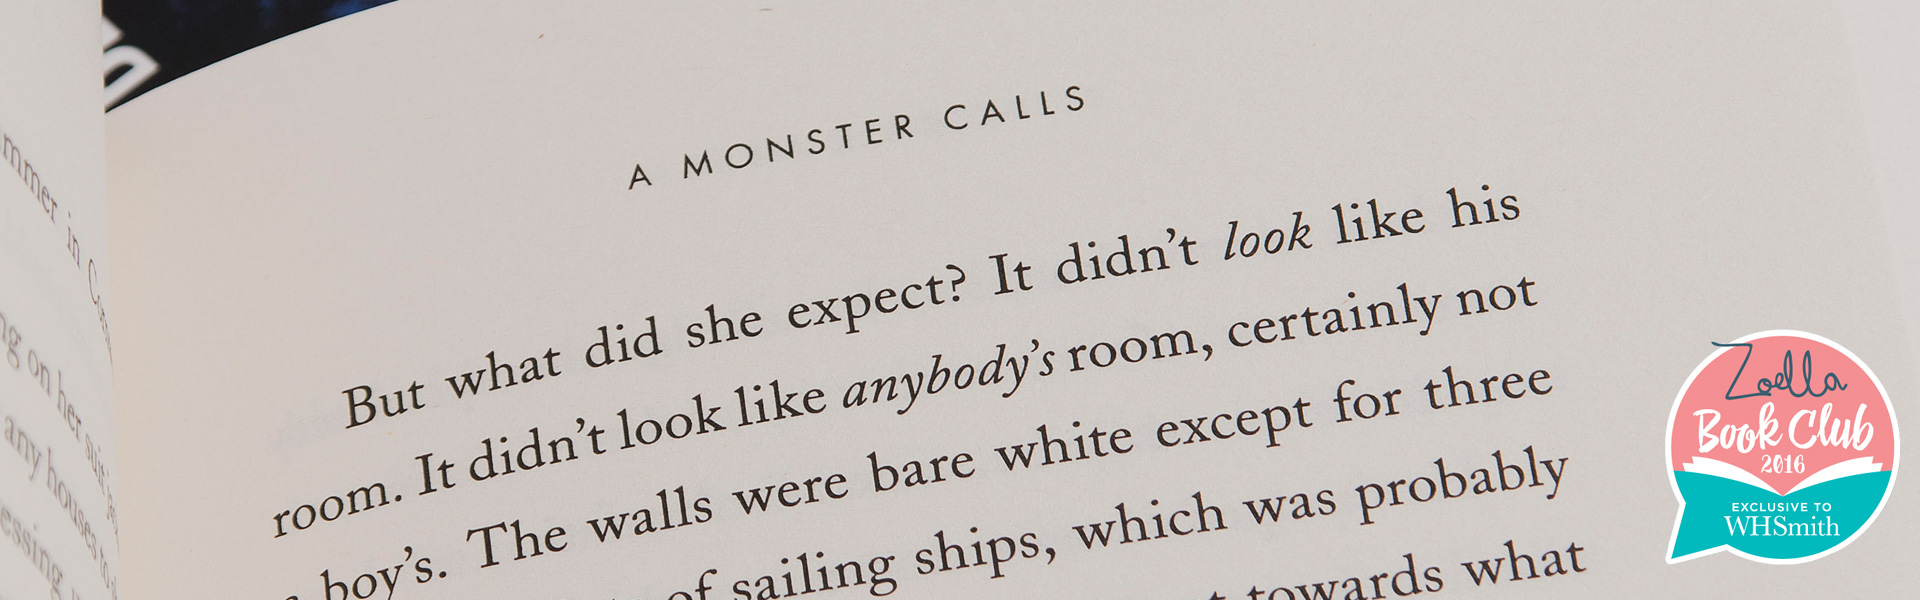 Read an Extract from A Monster Calls by Patrick Ness - WHSmith Blog